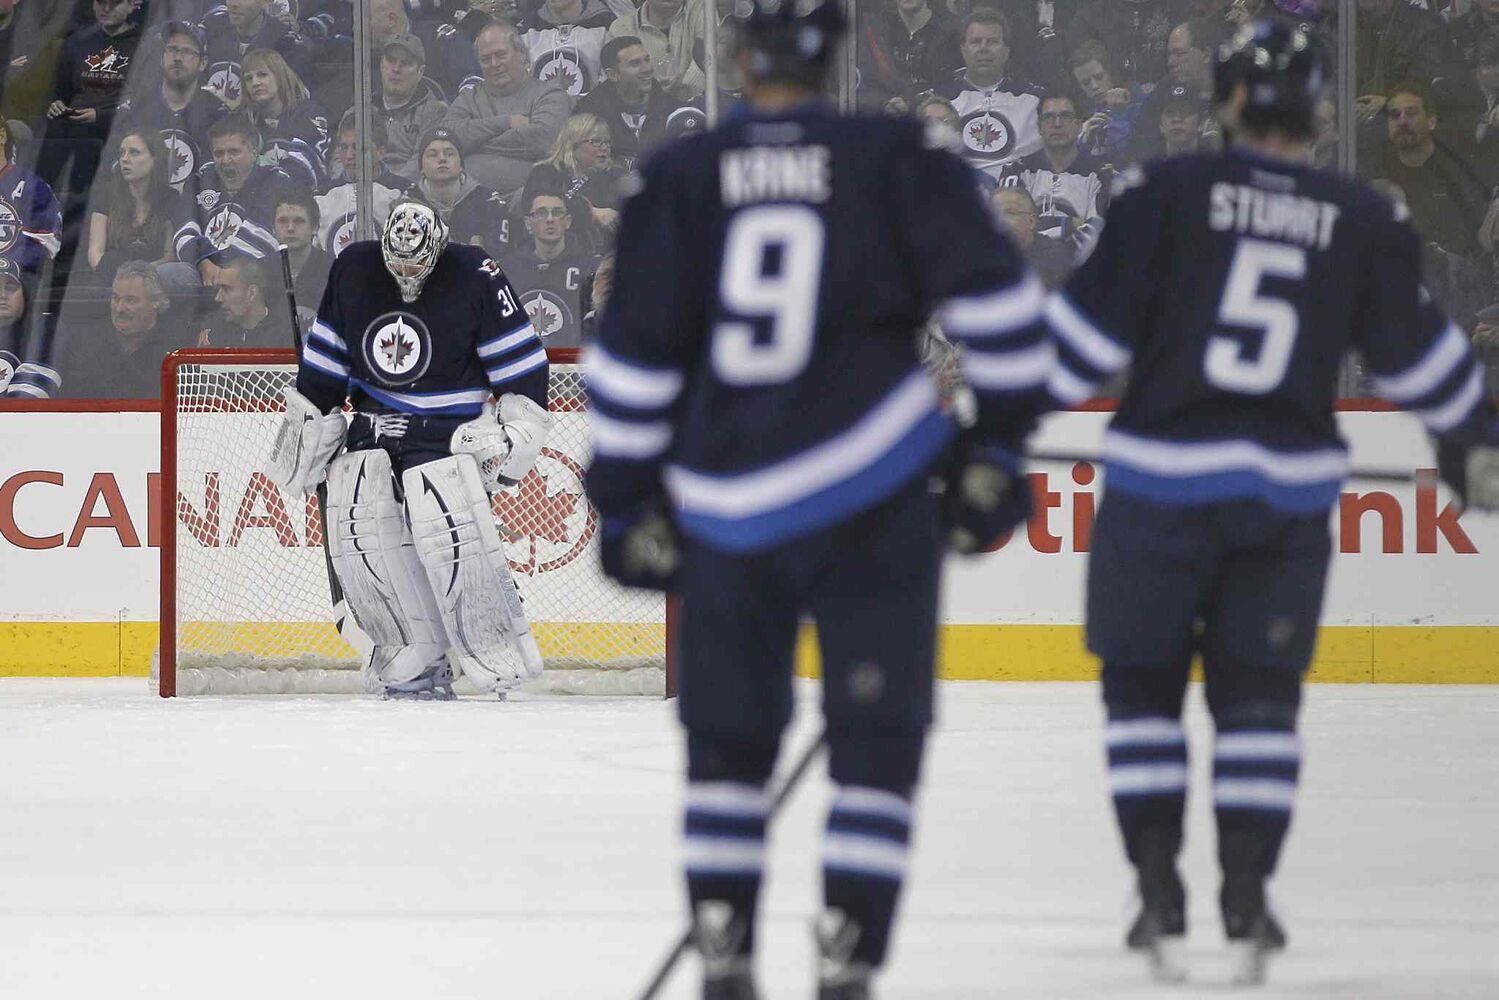 Winnipeg Jets' goaltender Ondrej Pavelec (31) hangs his head after the Lightning's Ondrej Palat's (18) second-period goal.